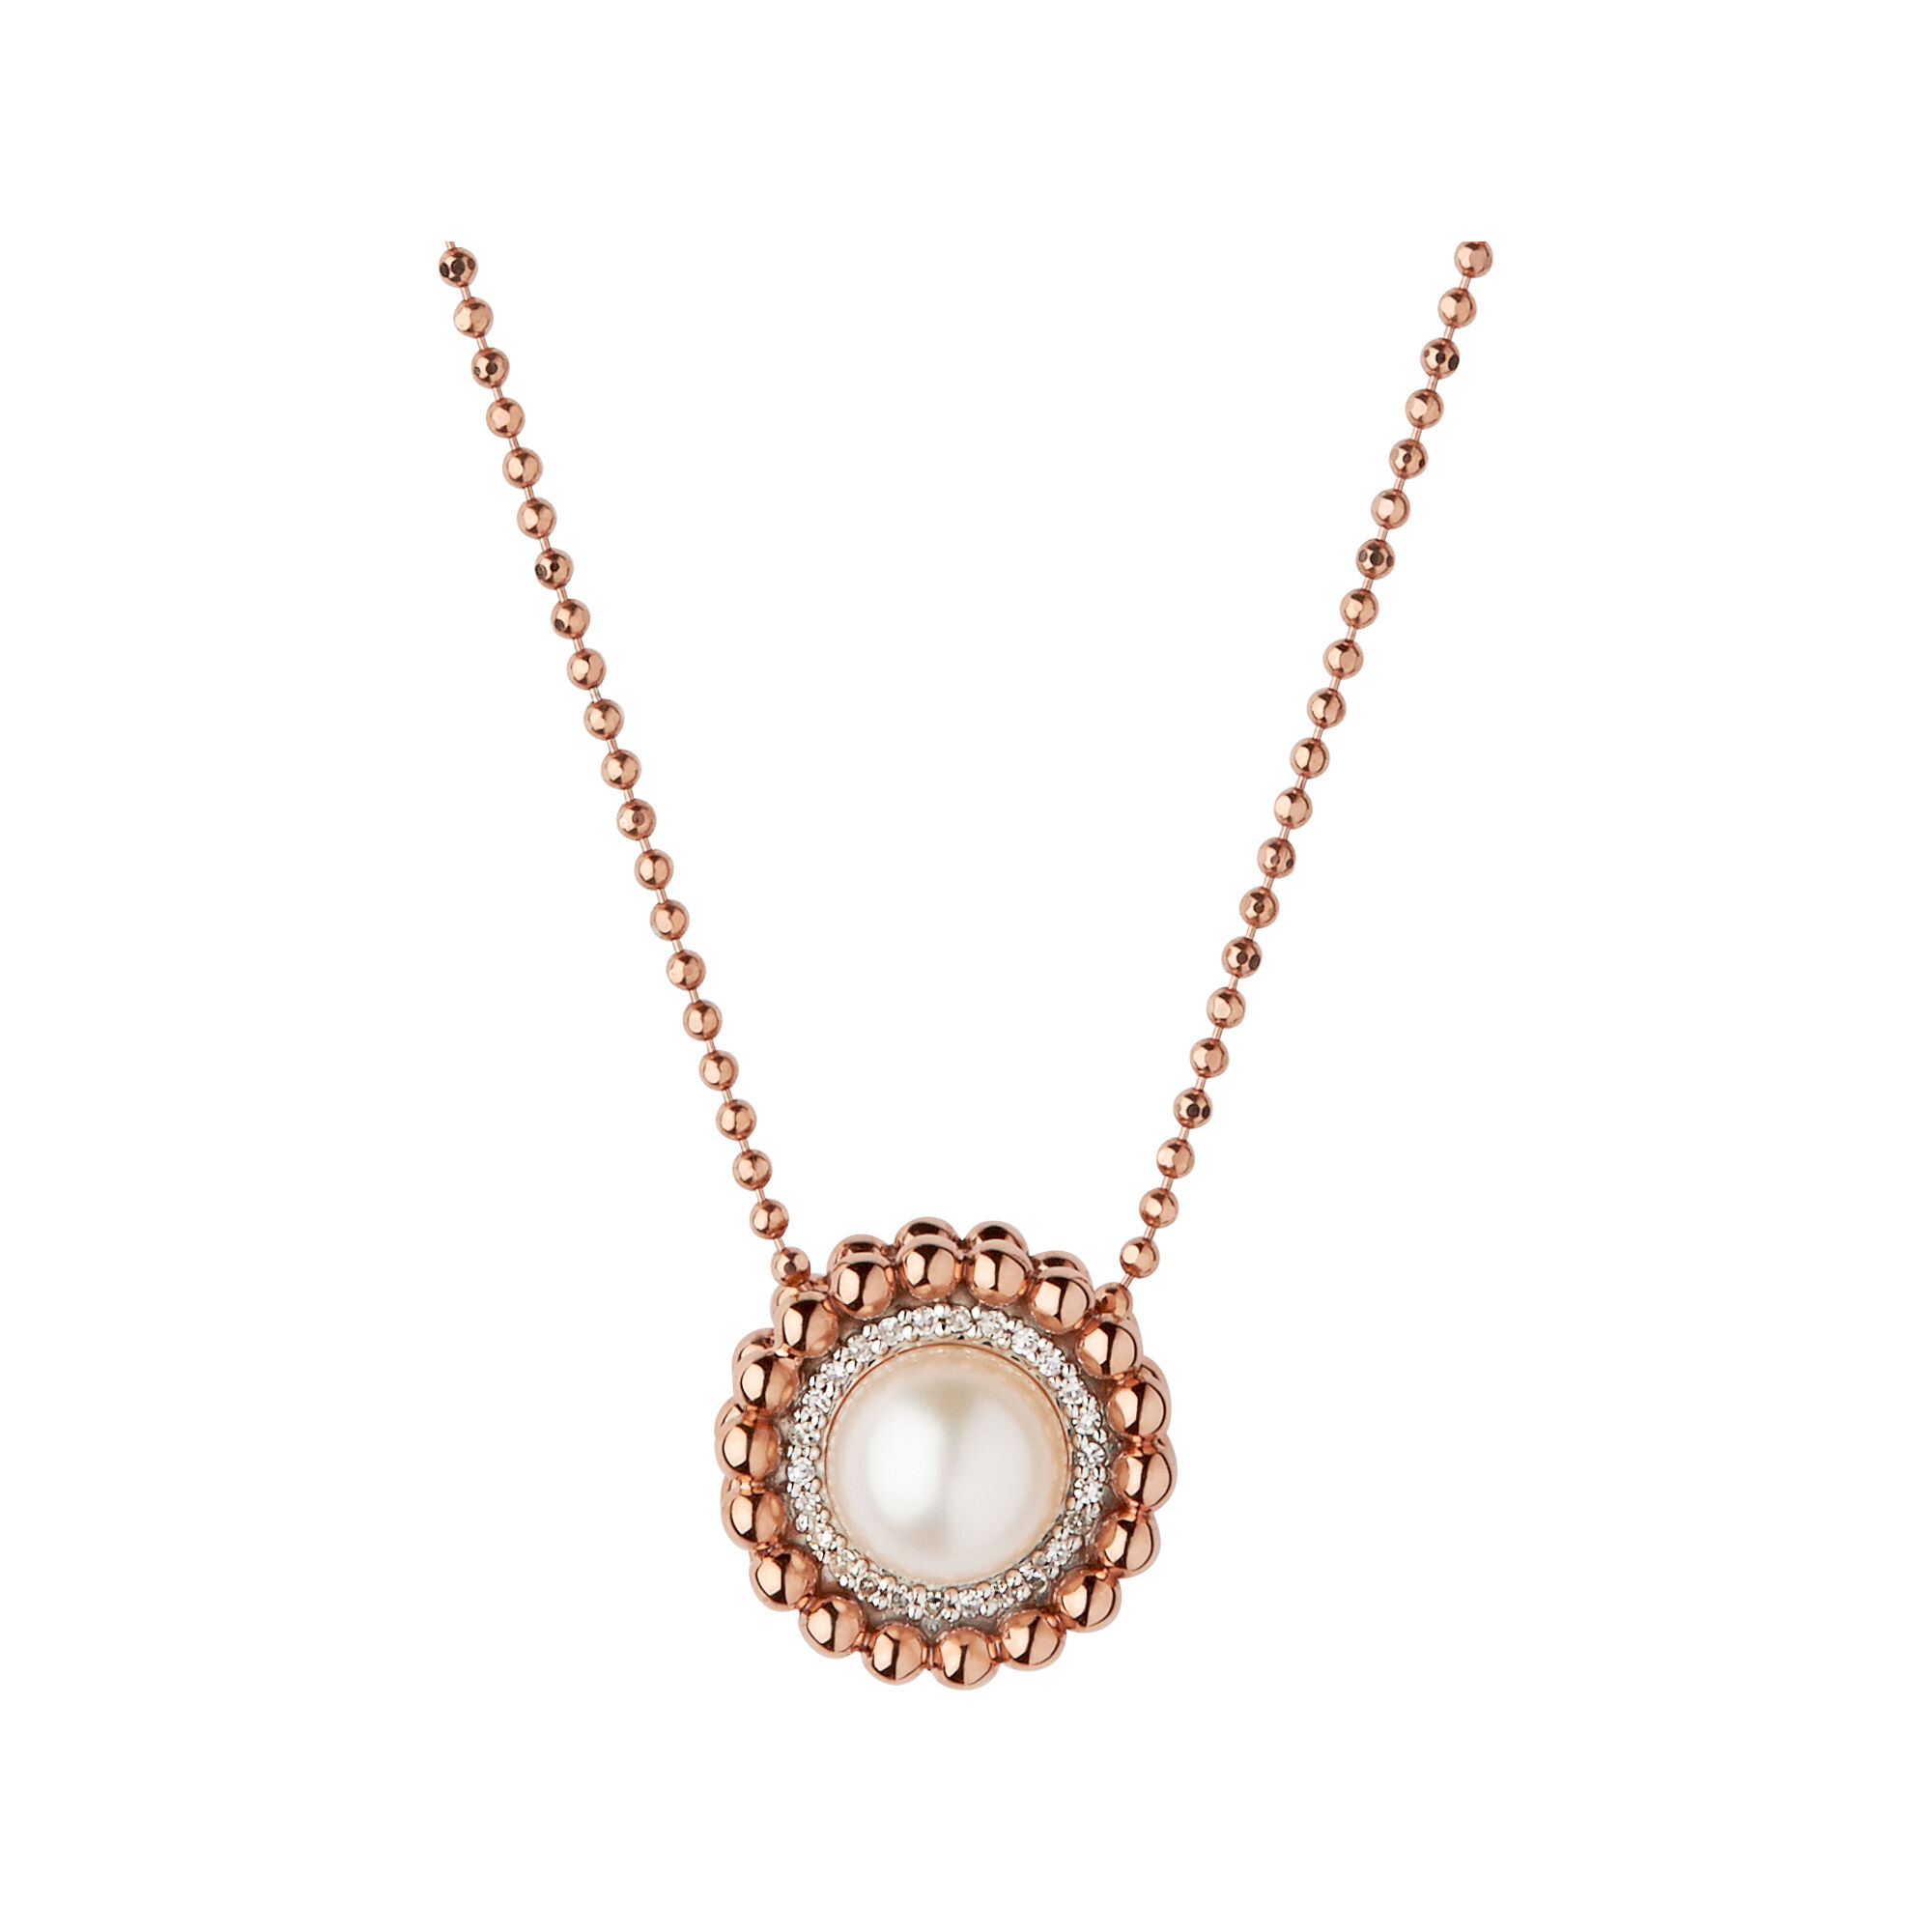 drop pure elizabethan necklace jewelry accessories shop bliss pearl